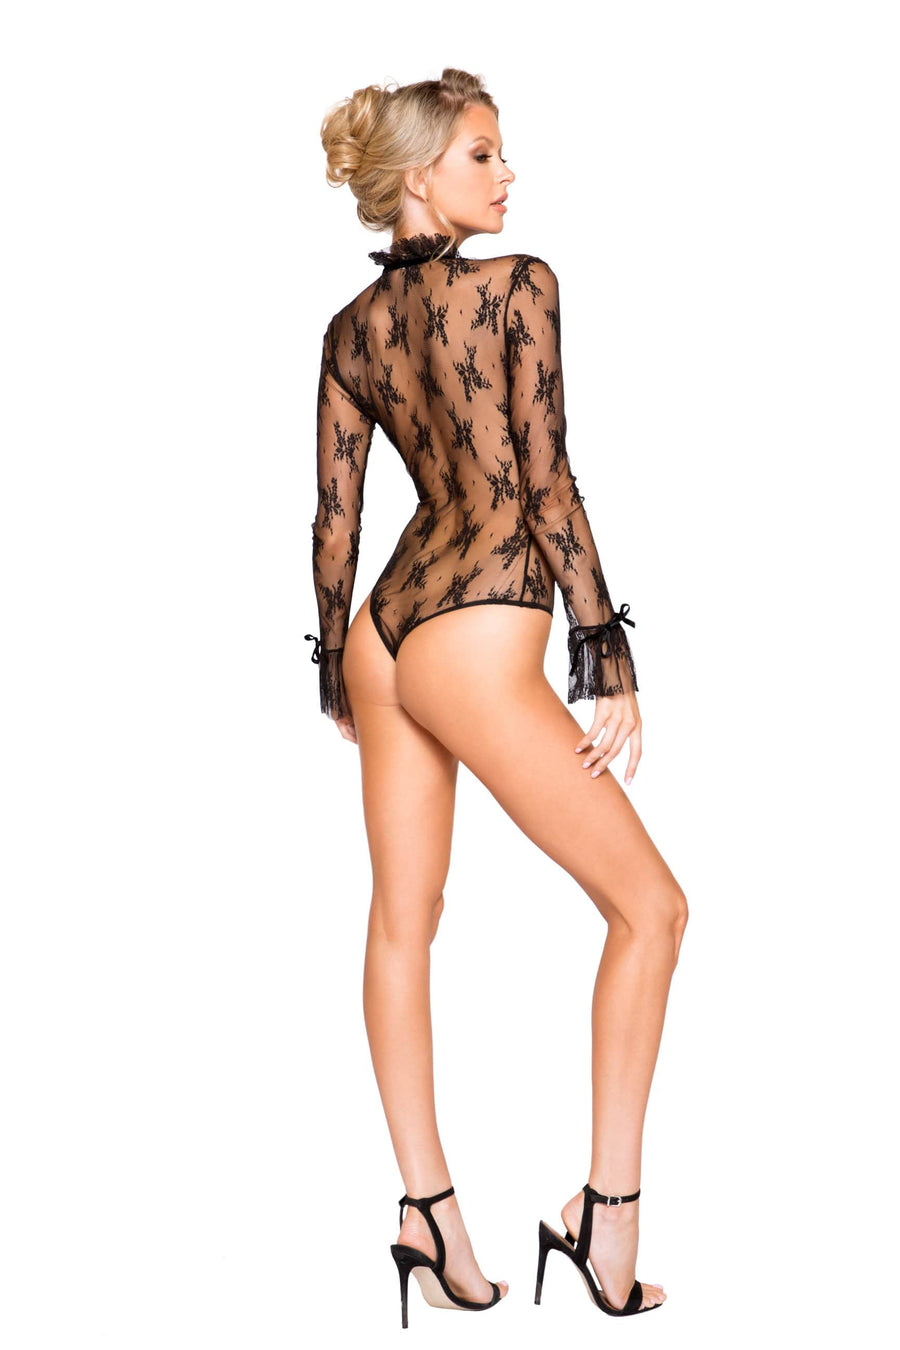 Roma S/M / Black Black Long Sleeved Teddy Bodysuit (Plus size available) SHC-LI248-BLK-S/M Apparel & Accessories > Clothing > One Pieces > Jumpsuits & Rompers